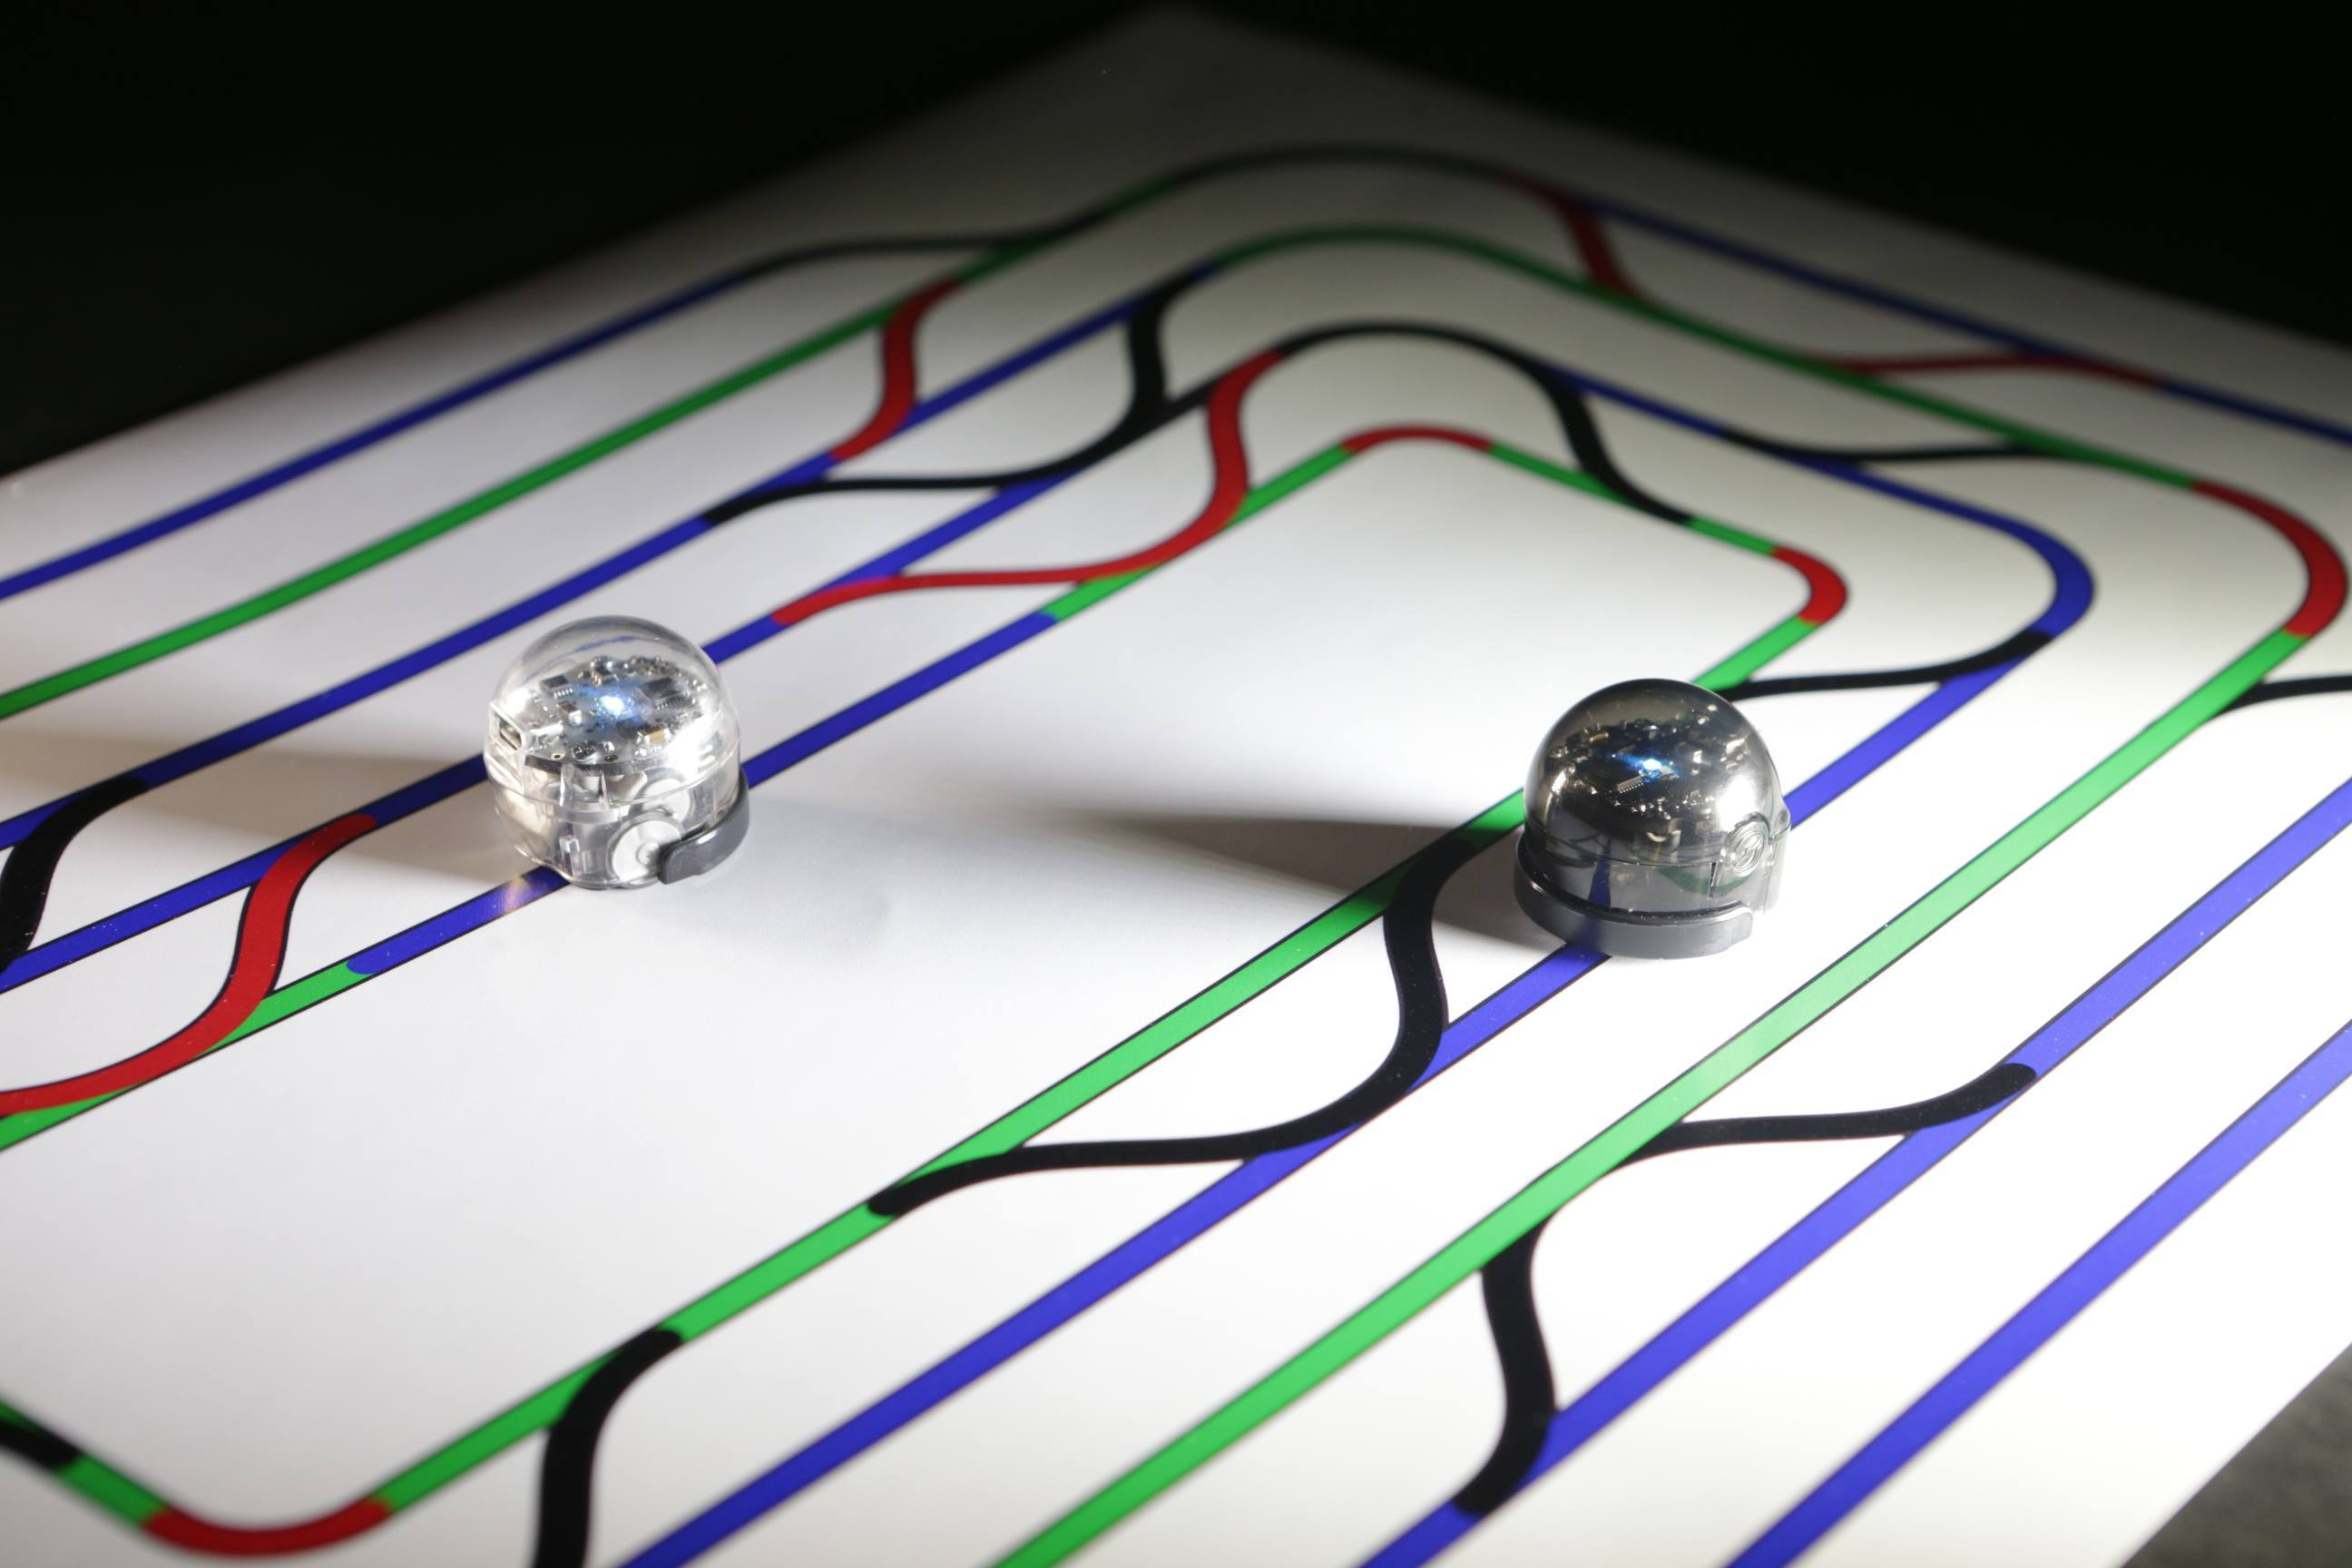 ozobot review 2015 hottest tech geek toys